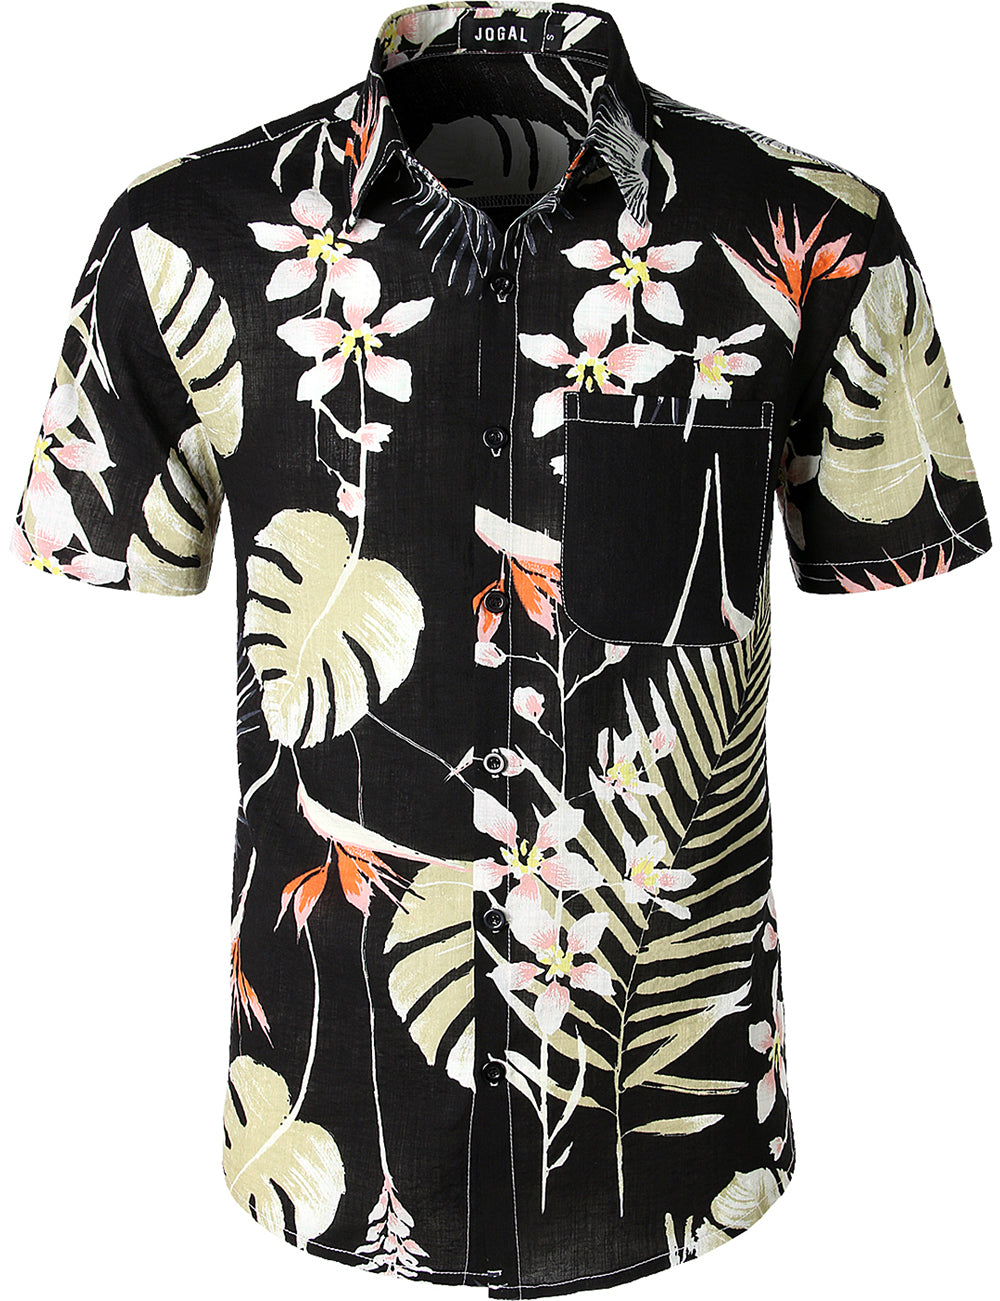 JOGAL Men's Flower Casual Button Down Short Sleeve Front packet Hawaiian Shirt(Black)